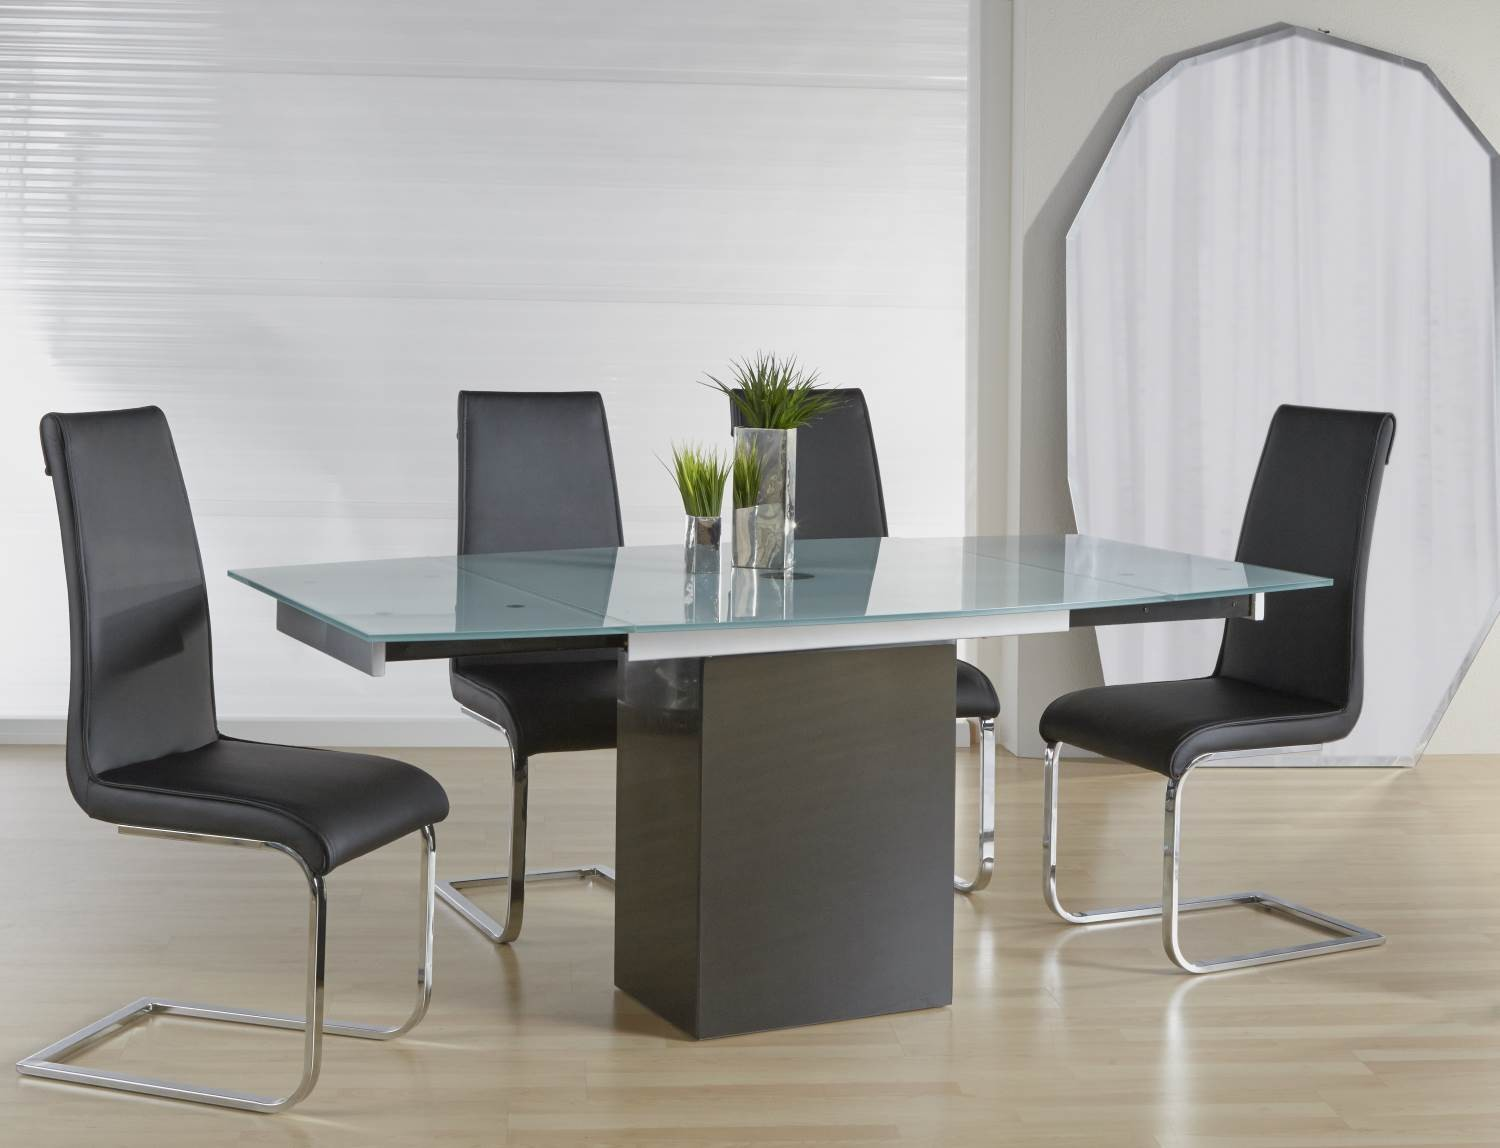 Ritz frosted glass quadrato extendable dining table from star international Frosted glass furniture